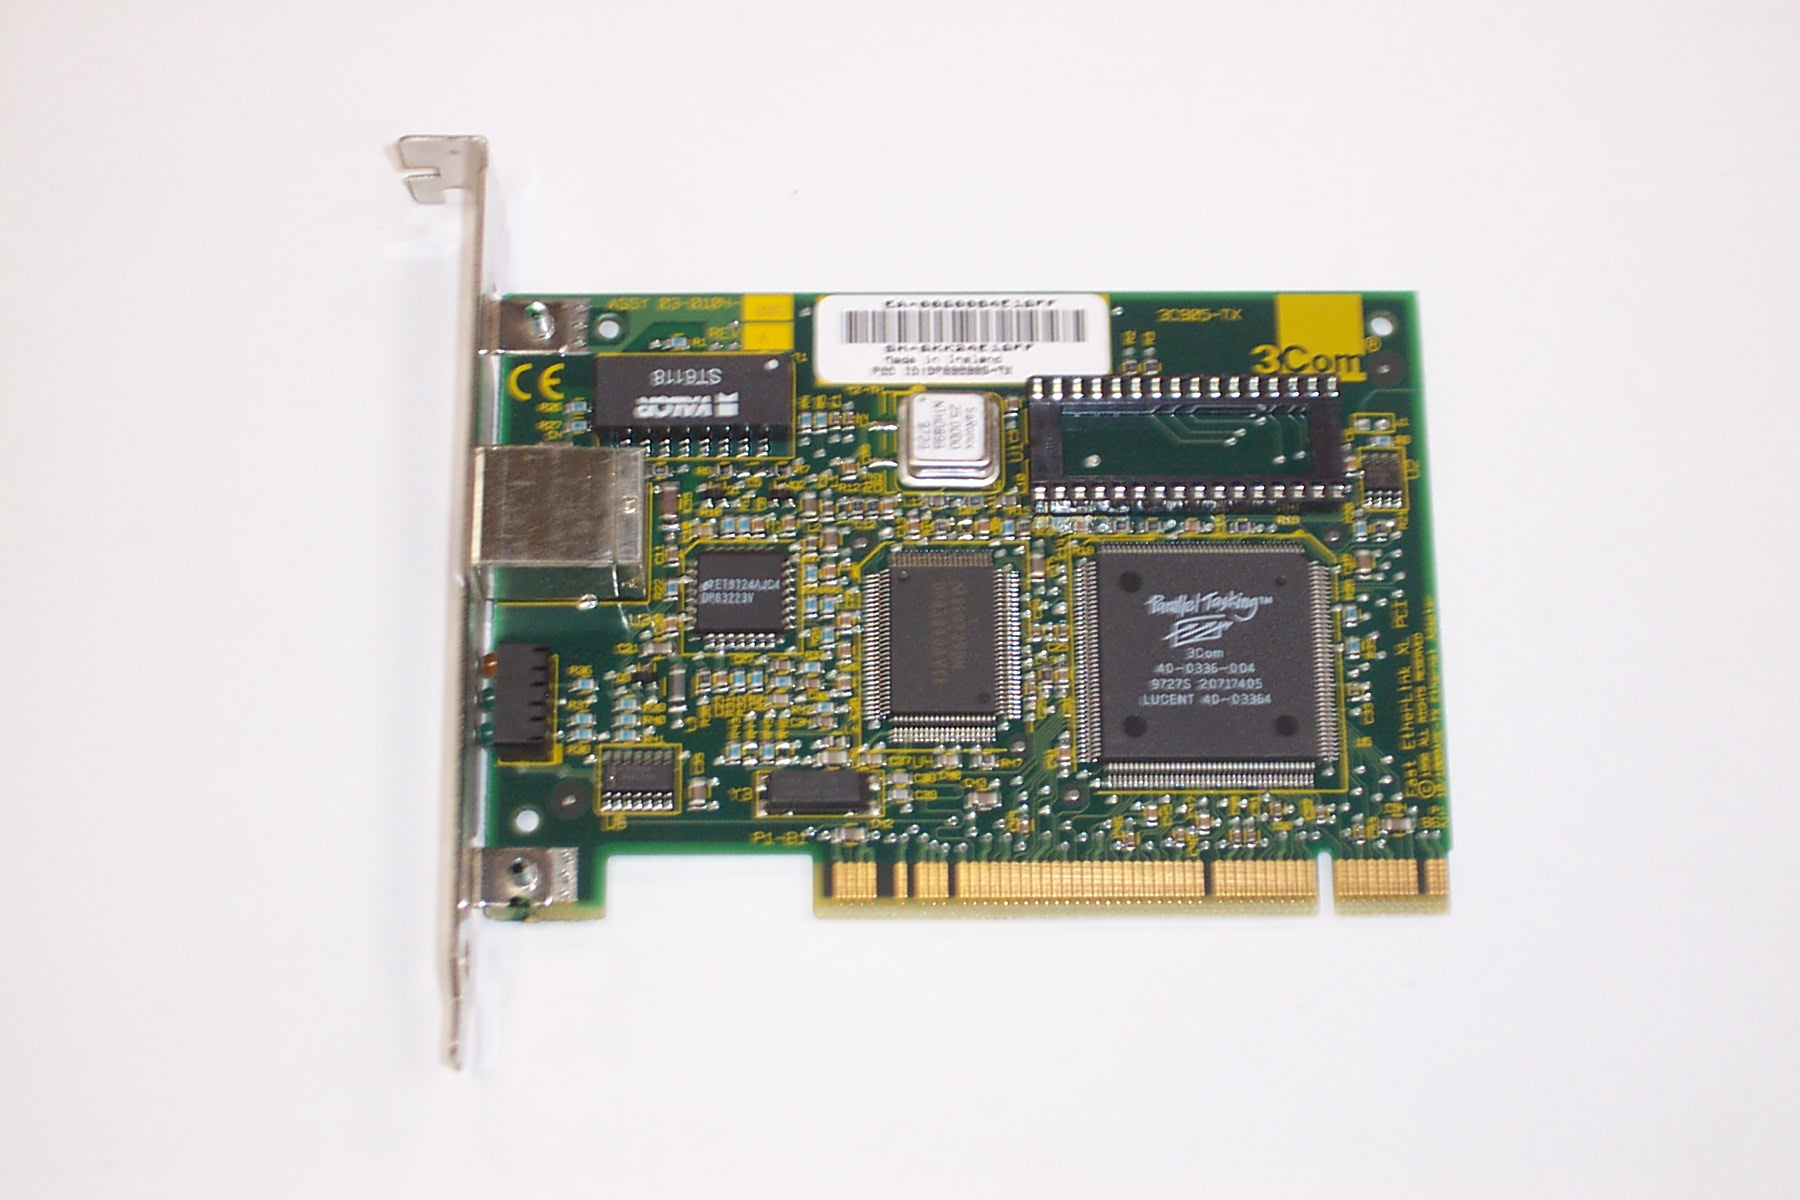 Driver for 3Com Etherlink XL 10/100 3C905C-TX